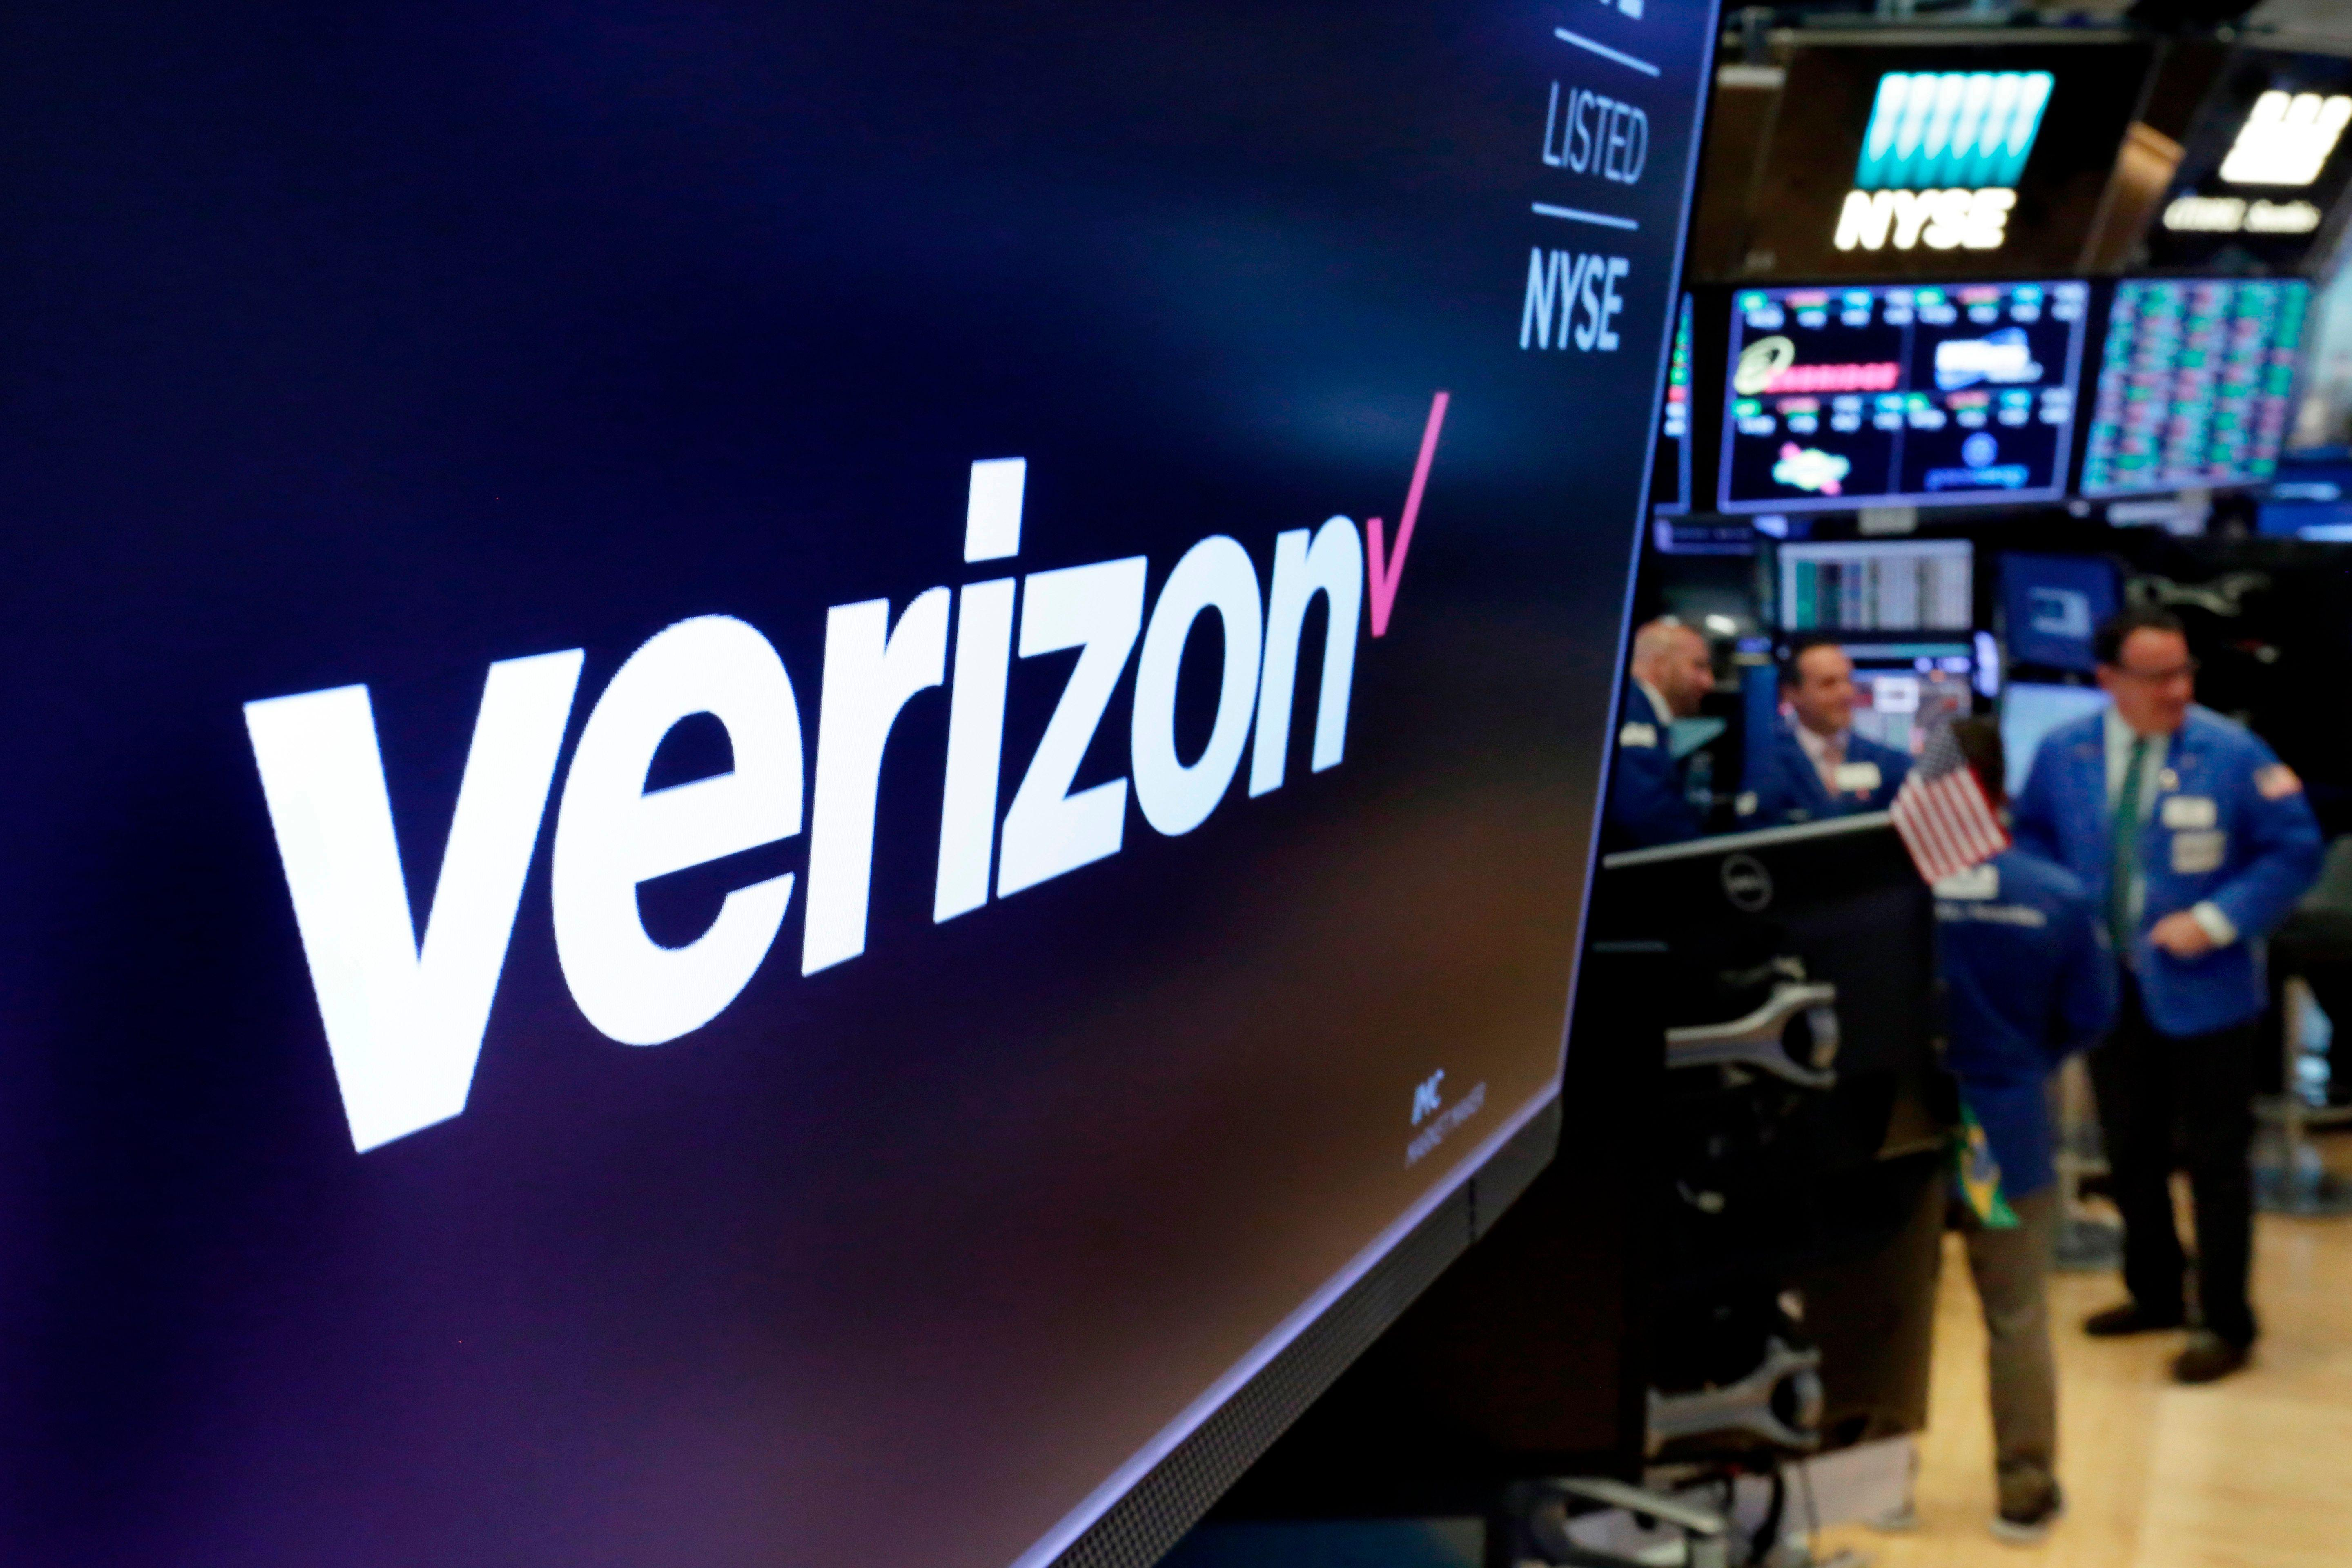 Verizon CEO: 5G will Be a Transformative Technology